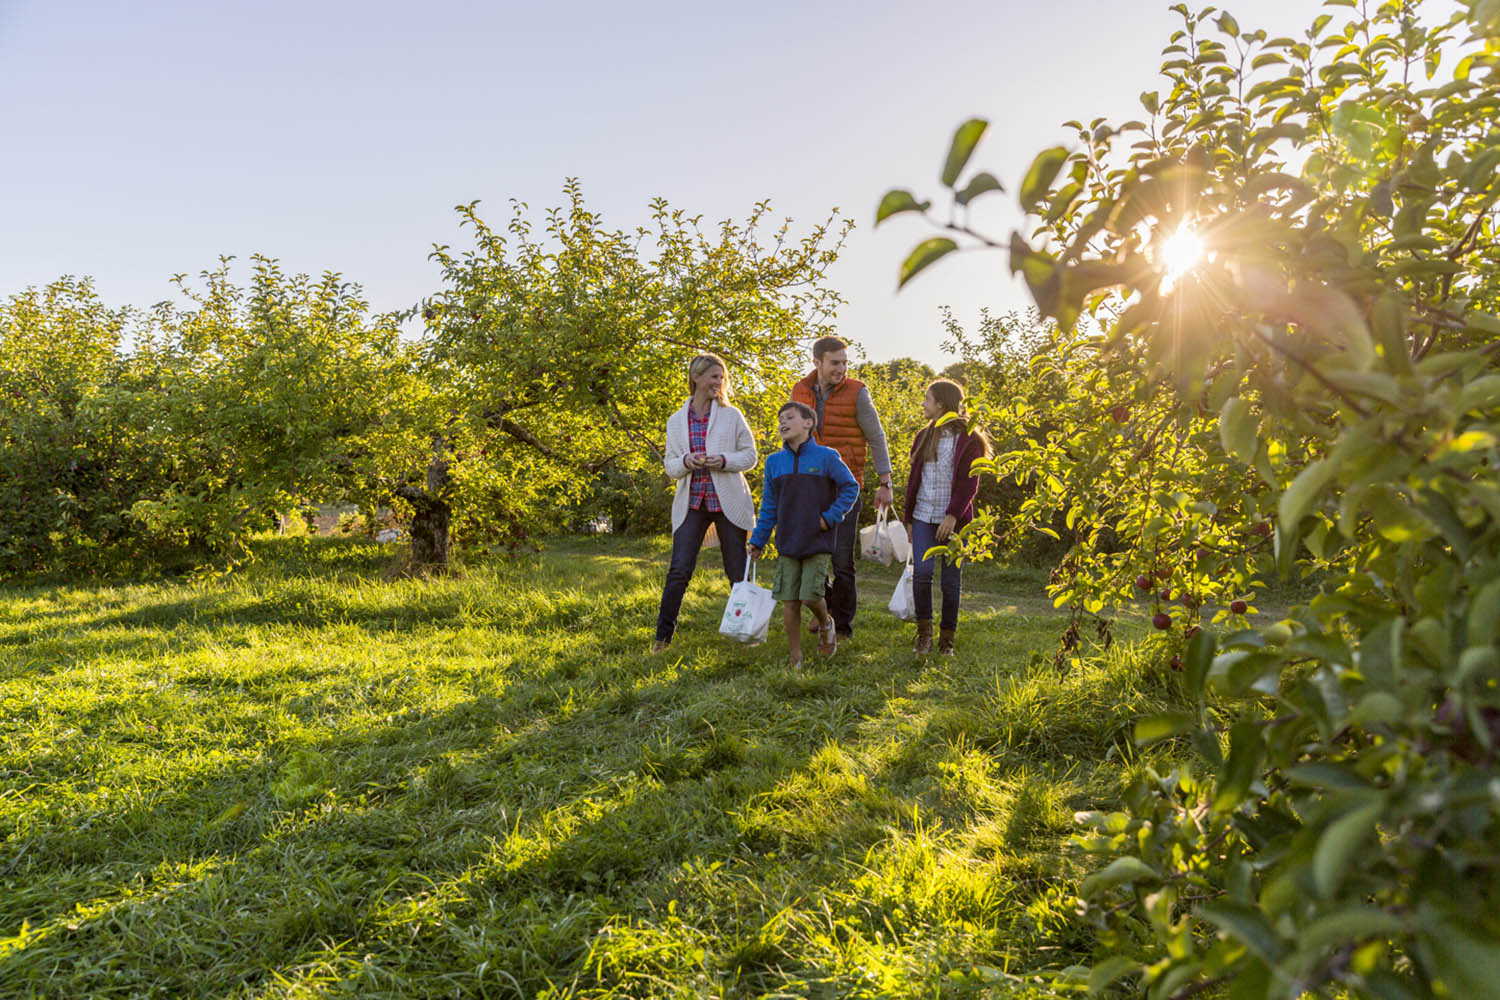 Family in apple orchard carrying bags of apples